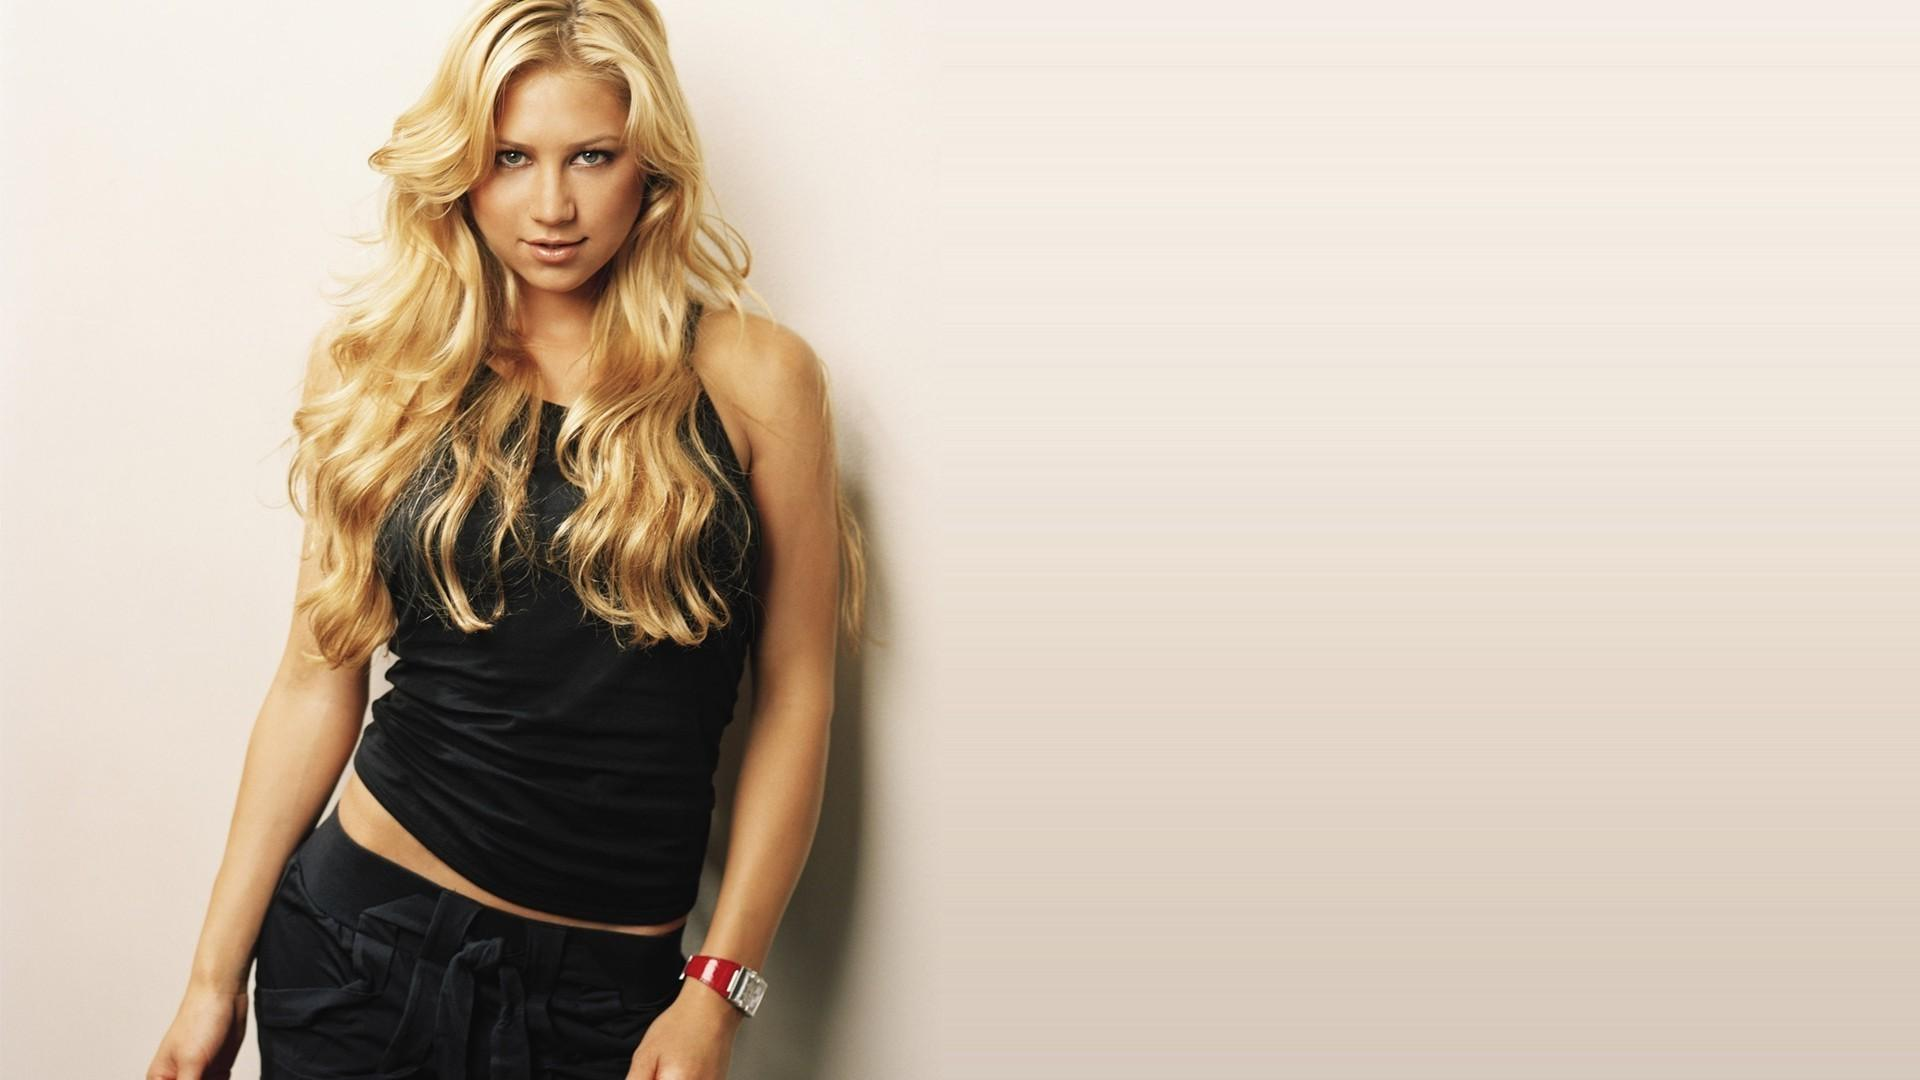 Anna Kournikova Wallpapers HD / Desktop and Mobile Backgrounds